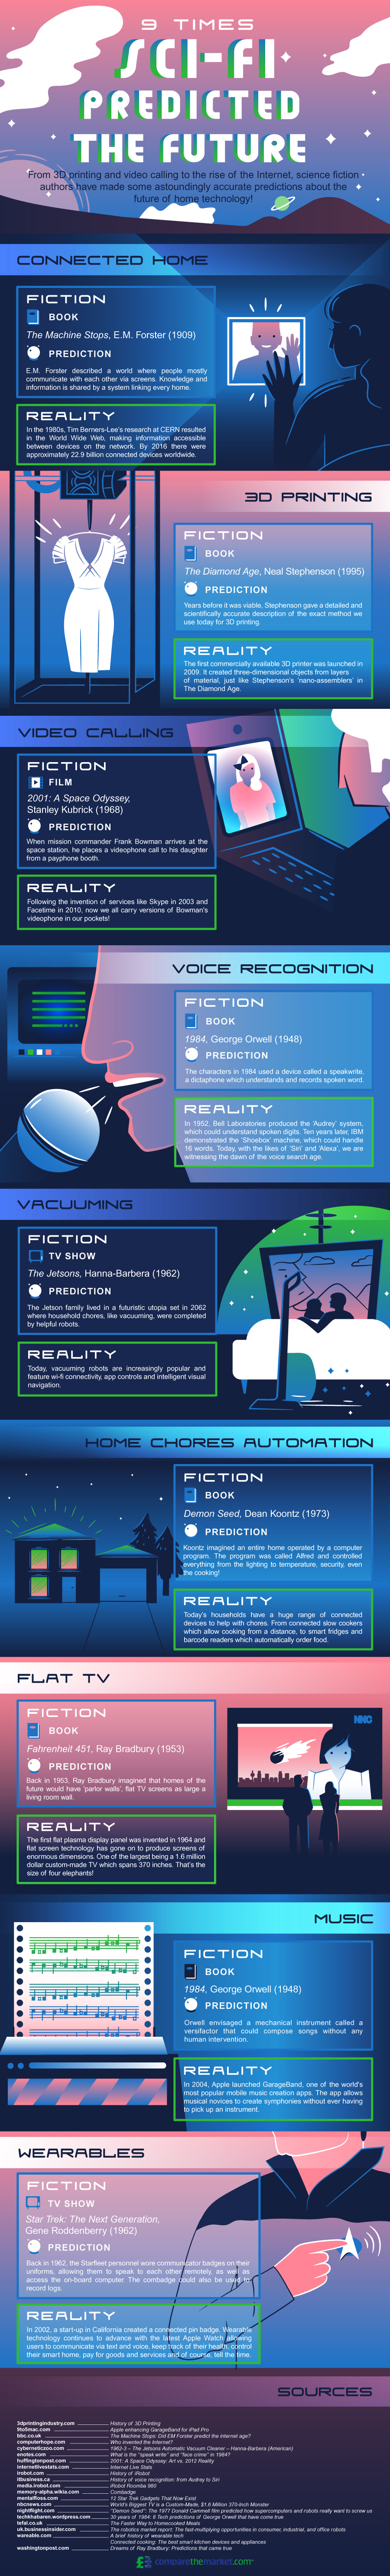 Future of the Smart Home science fiction